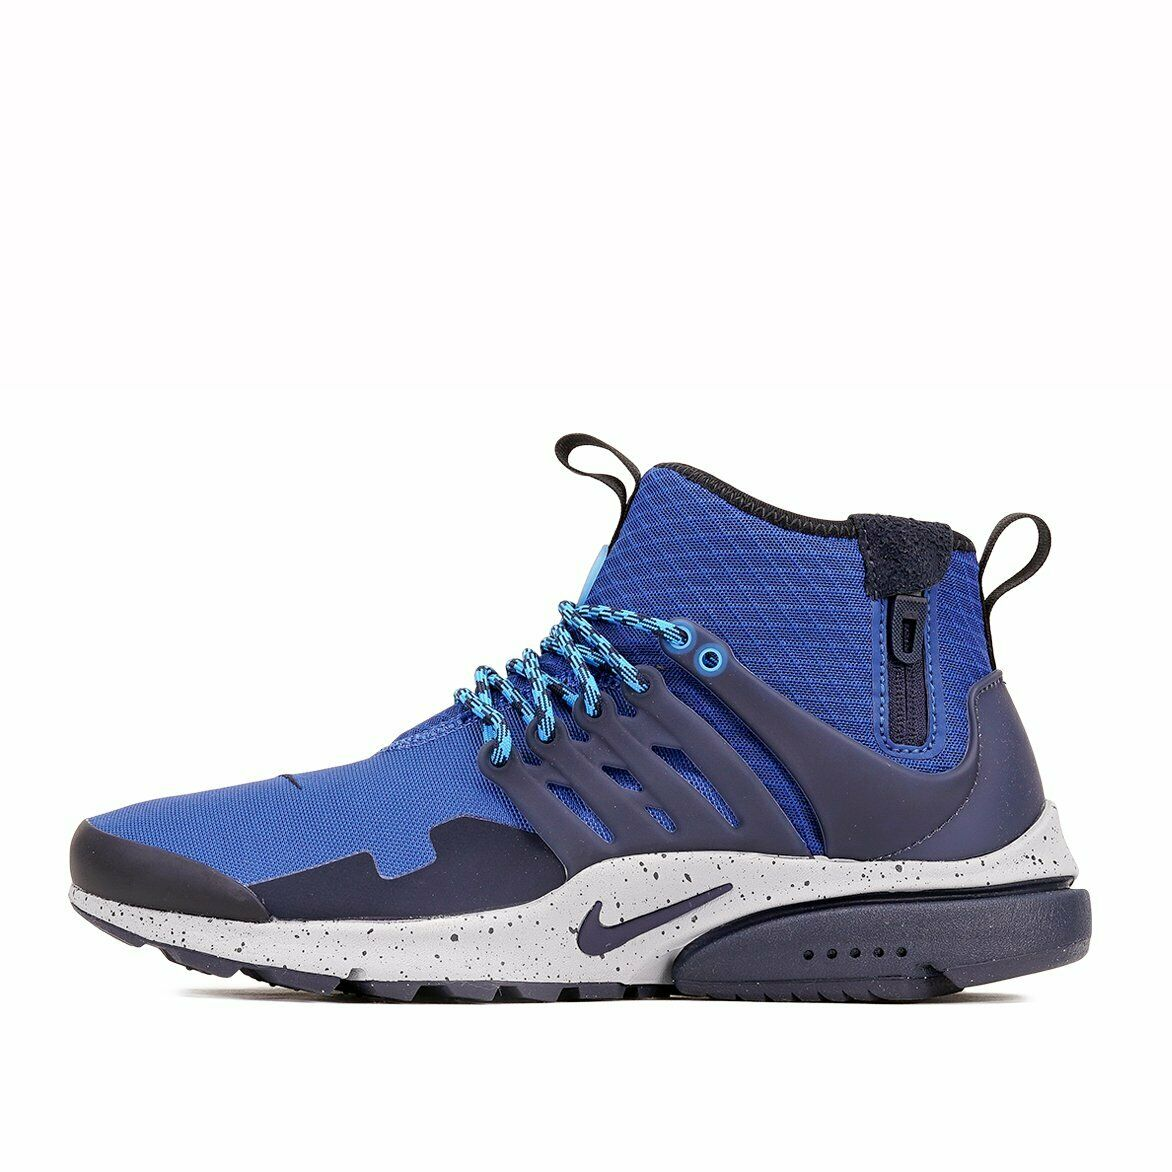 Nike Air Presto Mid Utility Men's Shoes 859524 401 Gym BlueObsidian sz 8 14